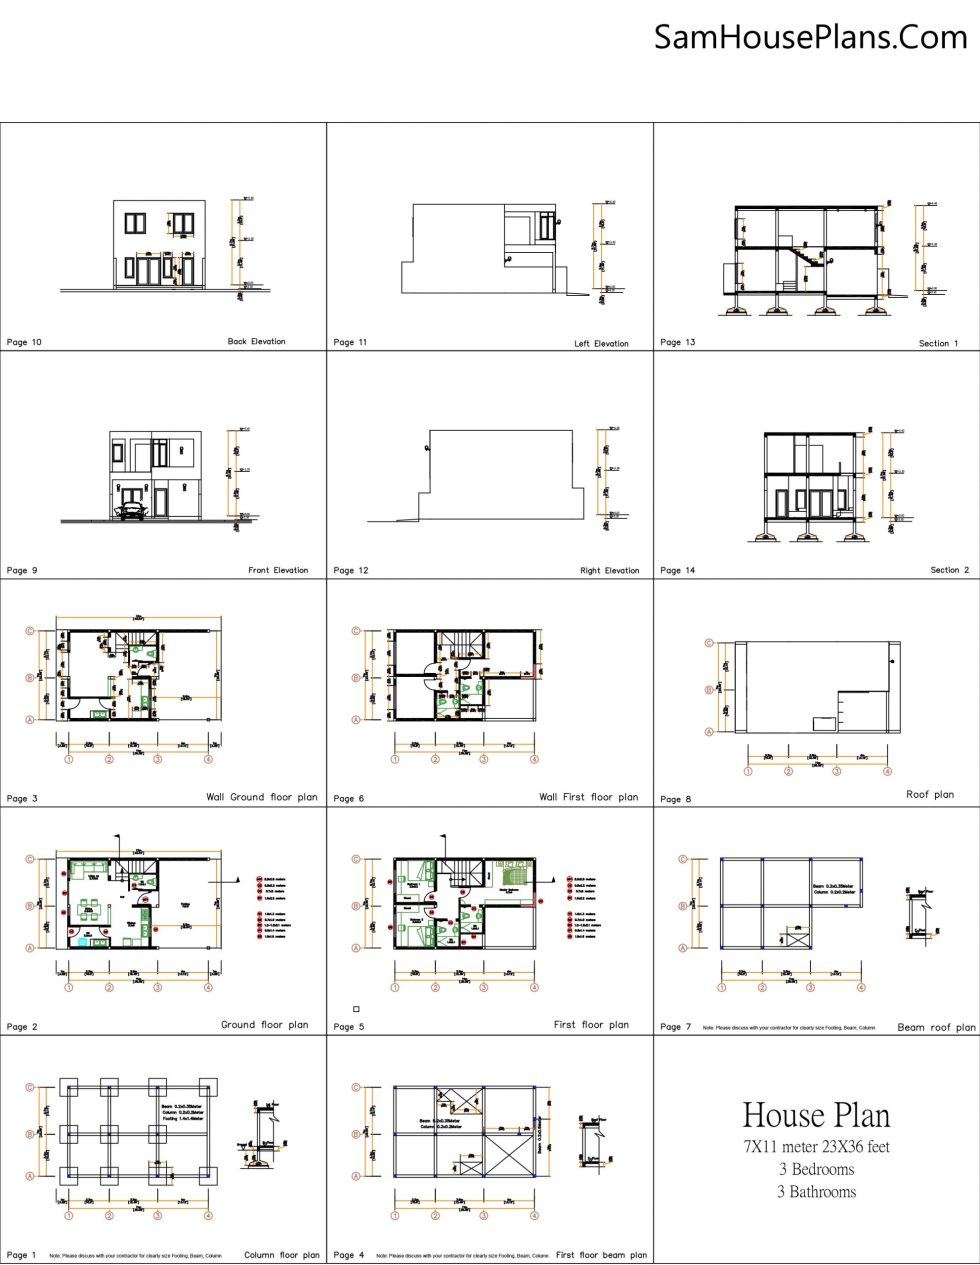 House Plans 7x13m with 3 Bedrooms Layout plan all 7x11m